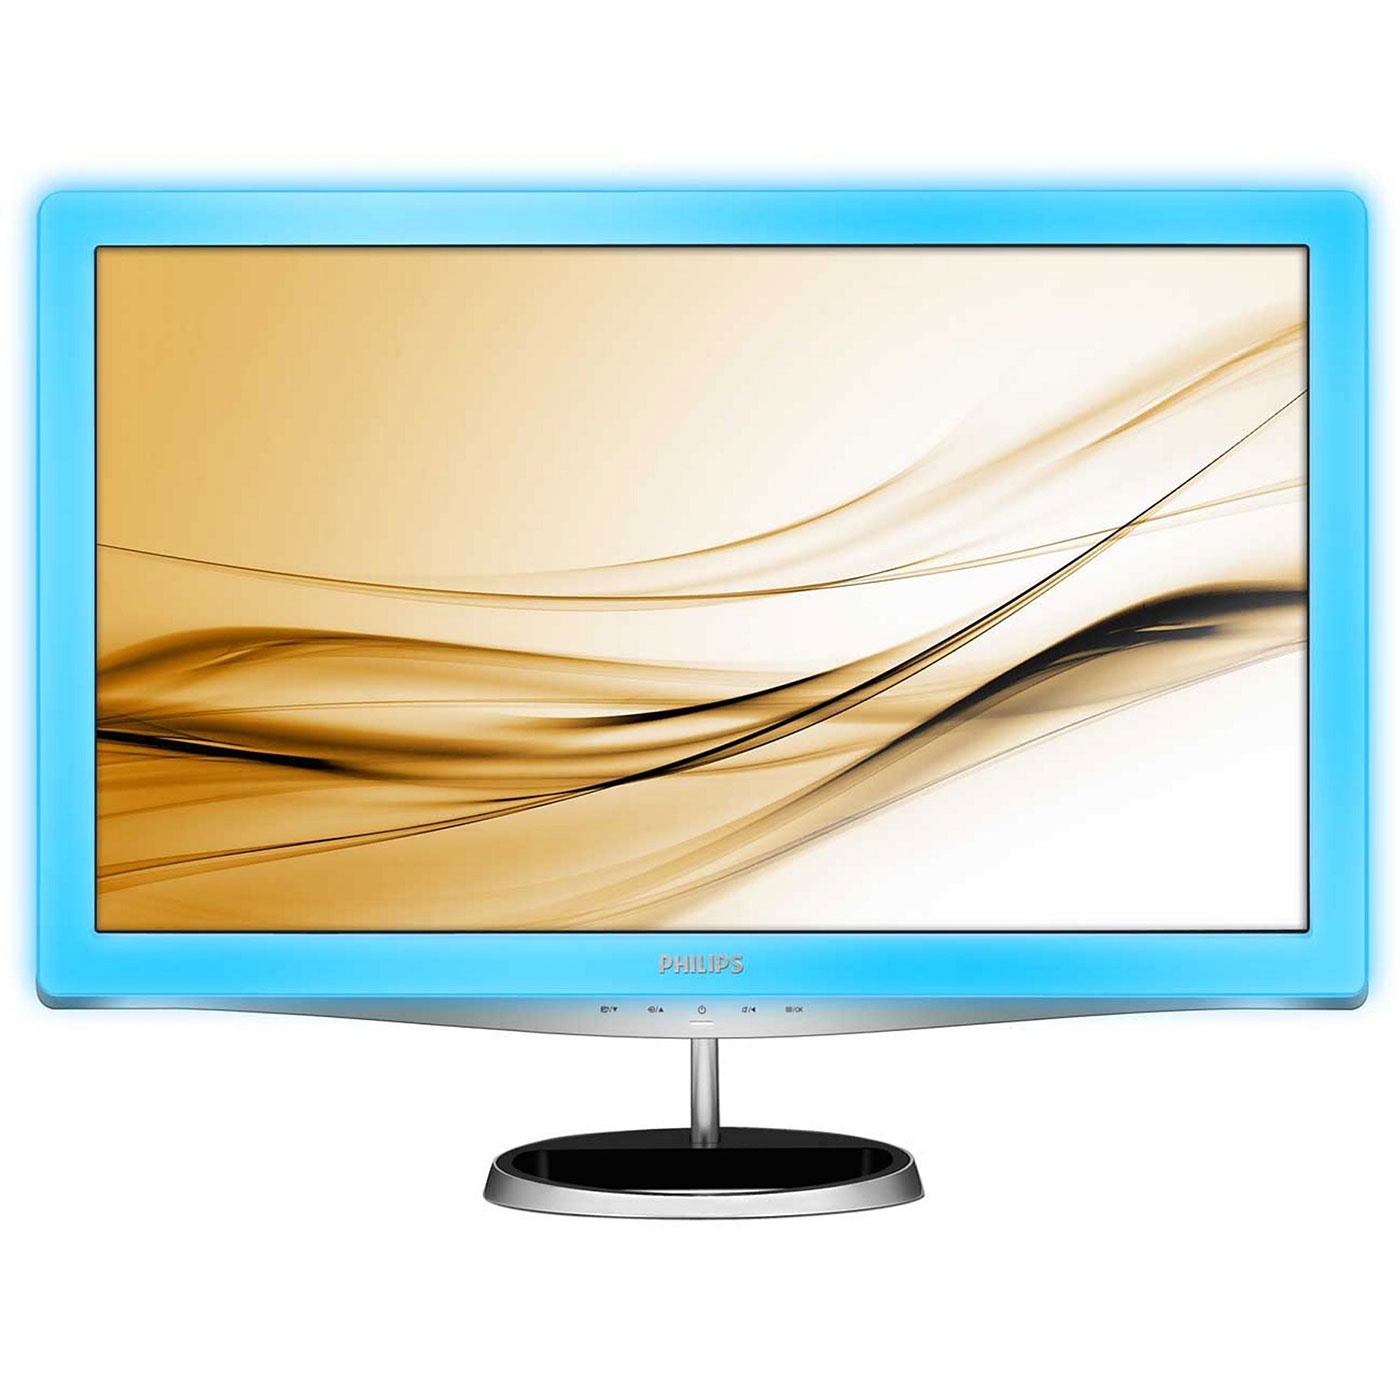 "Ecran PC Philips 23.6"" LED - 248X3LFHSB 1920 x 1080 pixels - 2 ms (gris à gris) - Format 16/9 - HDMI - Lightframe"